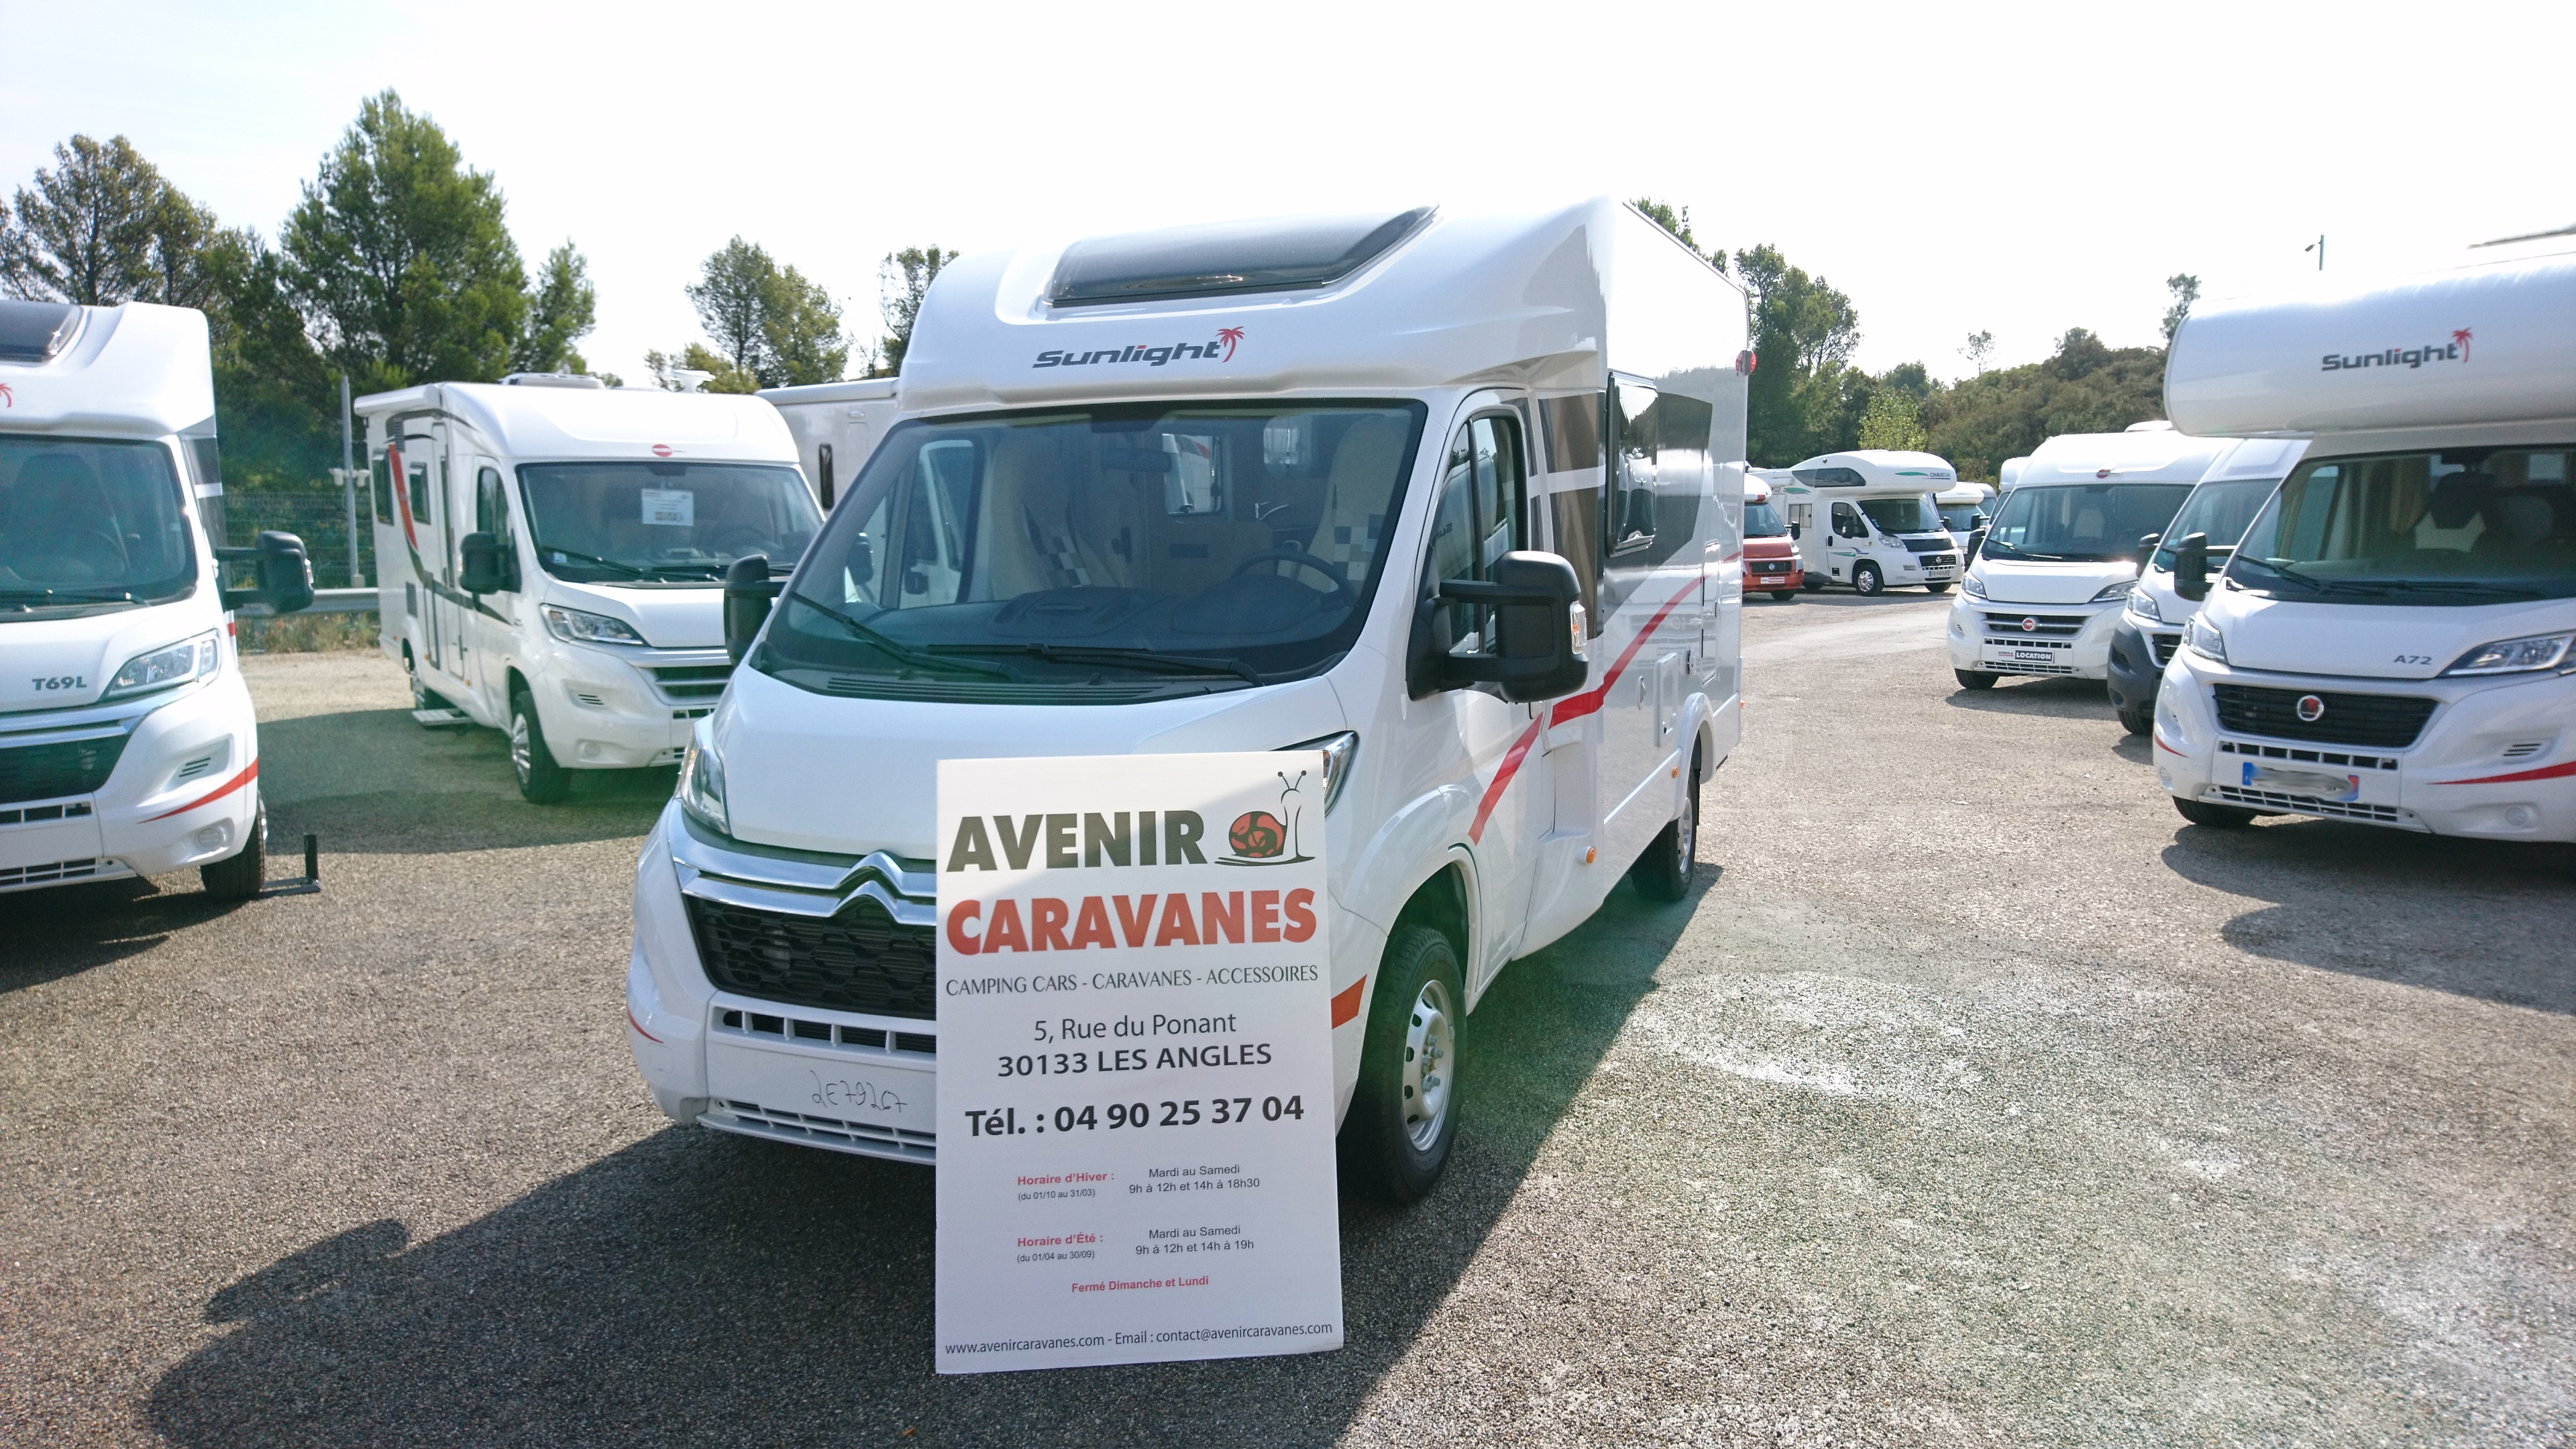 Sunlight t 60 neuf de 2018 citroen camping car en for Garage citroen les angles 30